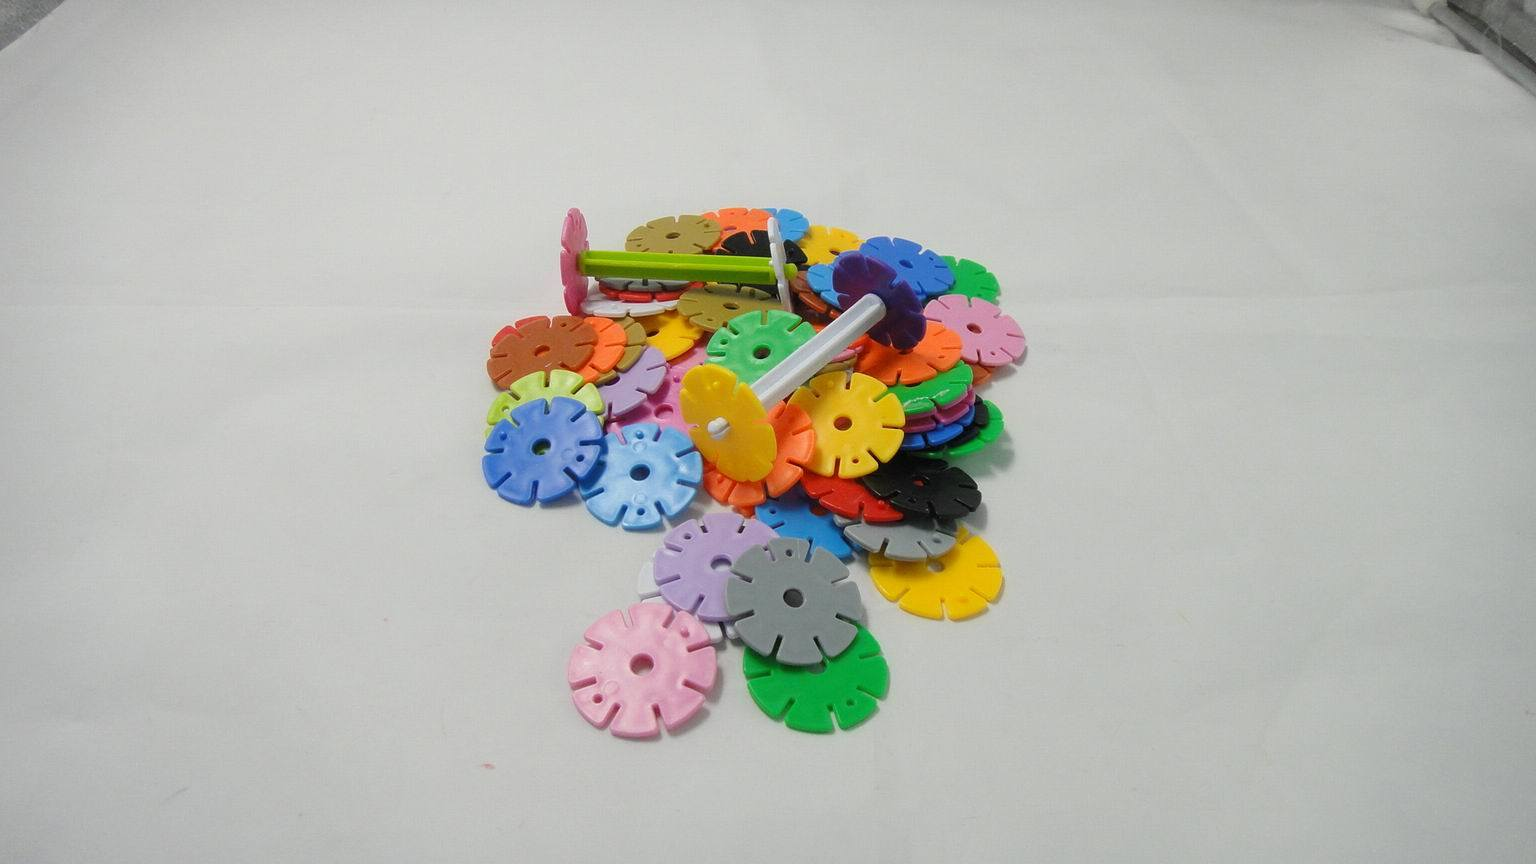 Snowflake Building Blocks Plastic Toy